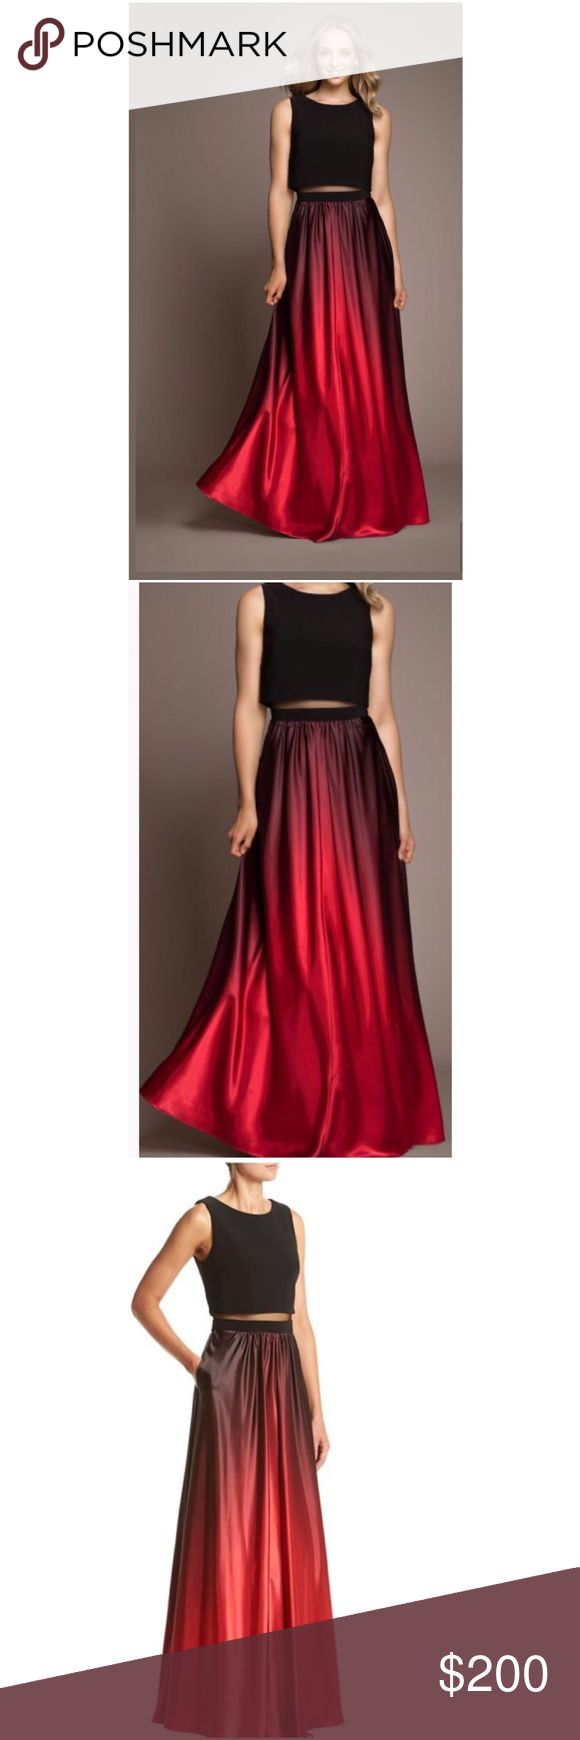 Betsy & Adam Ombré Gown Size 4 ❗️no offers❗️ Betsy & Adam Illusion 2 Pc. Ombré Gown Black And Red Dress Size 4 • an illusion panel links a cool crop top and high waist skirt on a trendy gown dipped in luscious shades of ombré  • Hidden back zipper with hook and eye closure  • Hits at floor ❗️price is firm pls ❗️ Betsy & Adam Dresses Prom